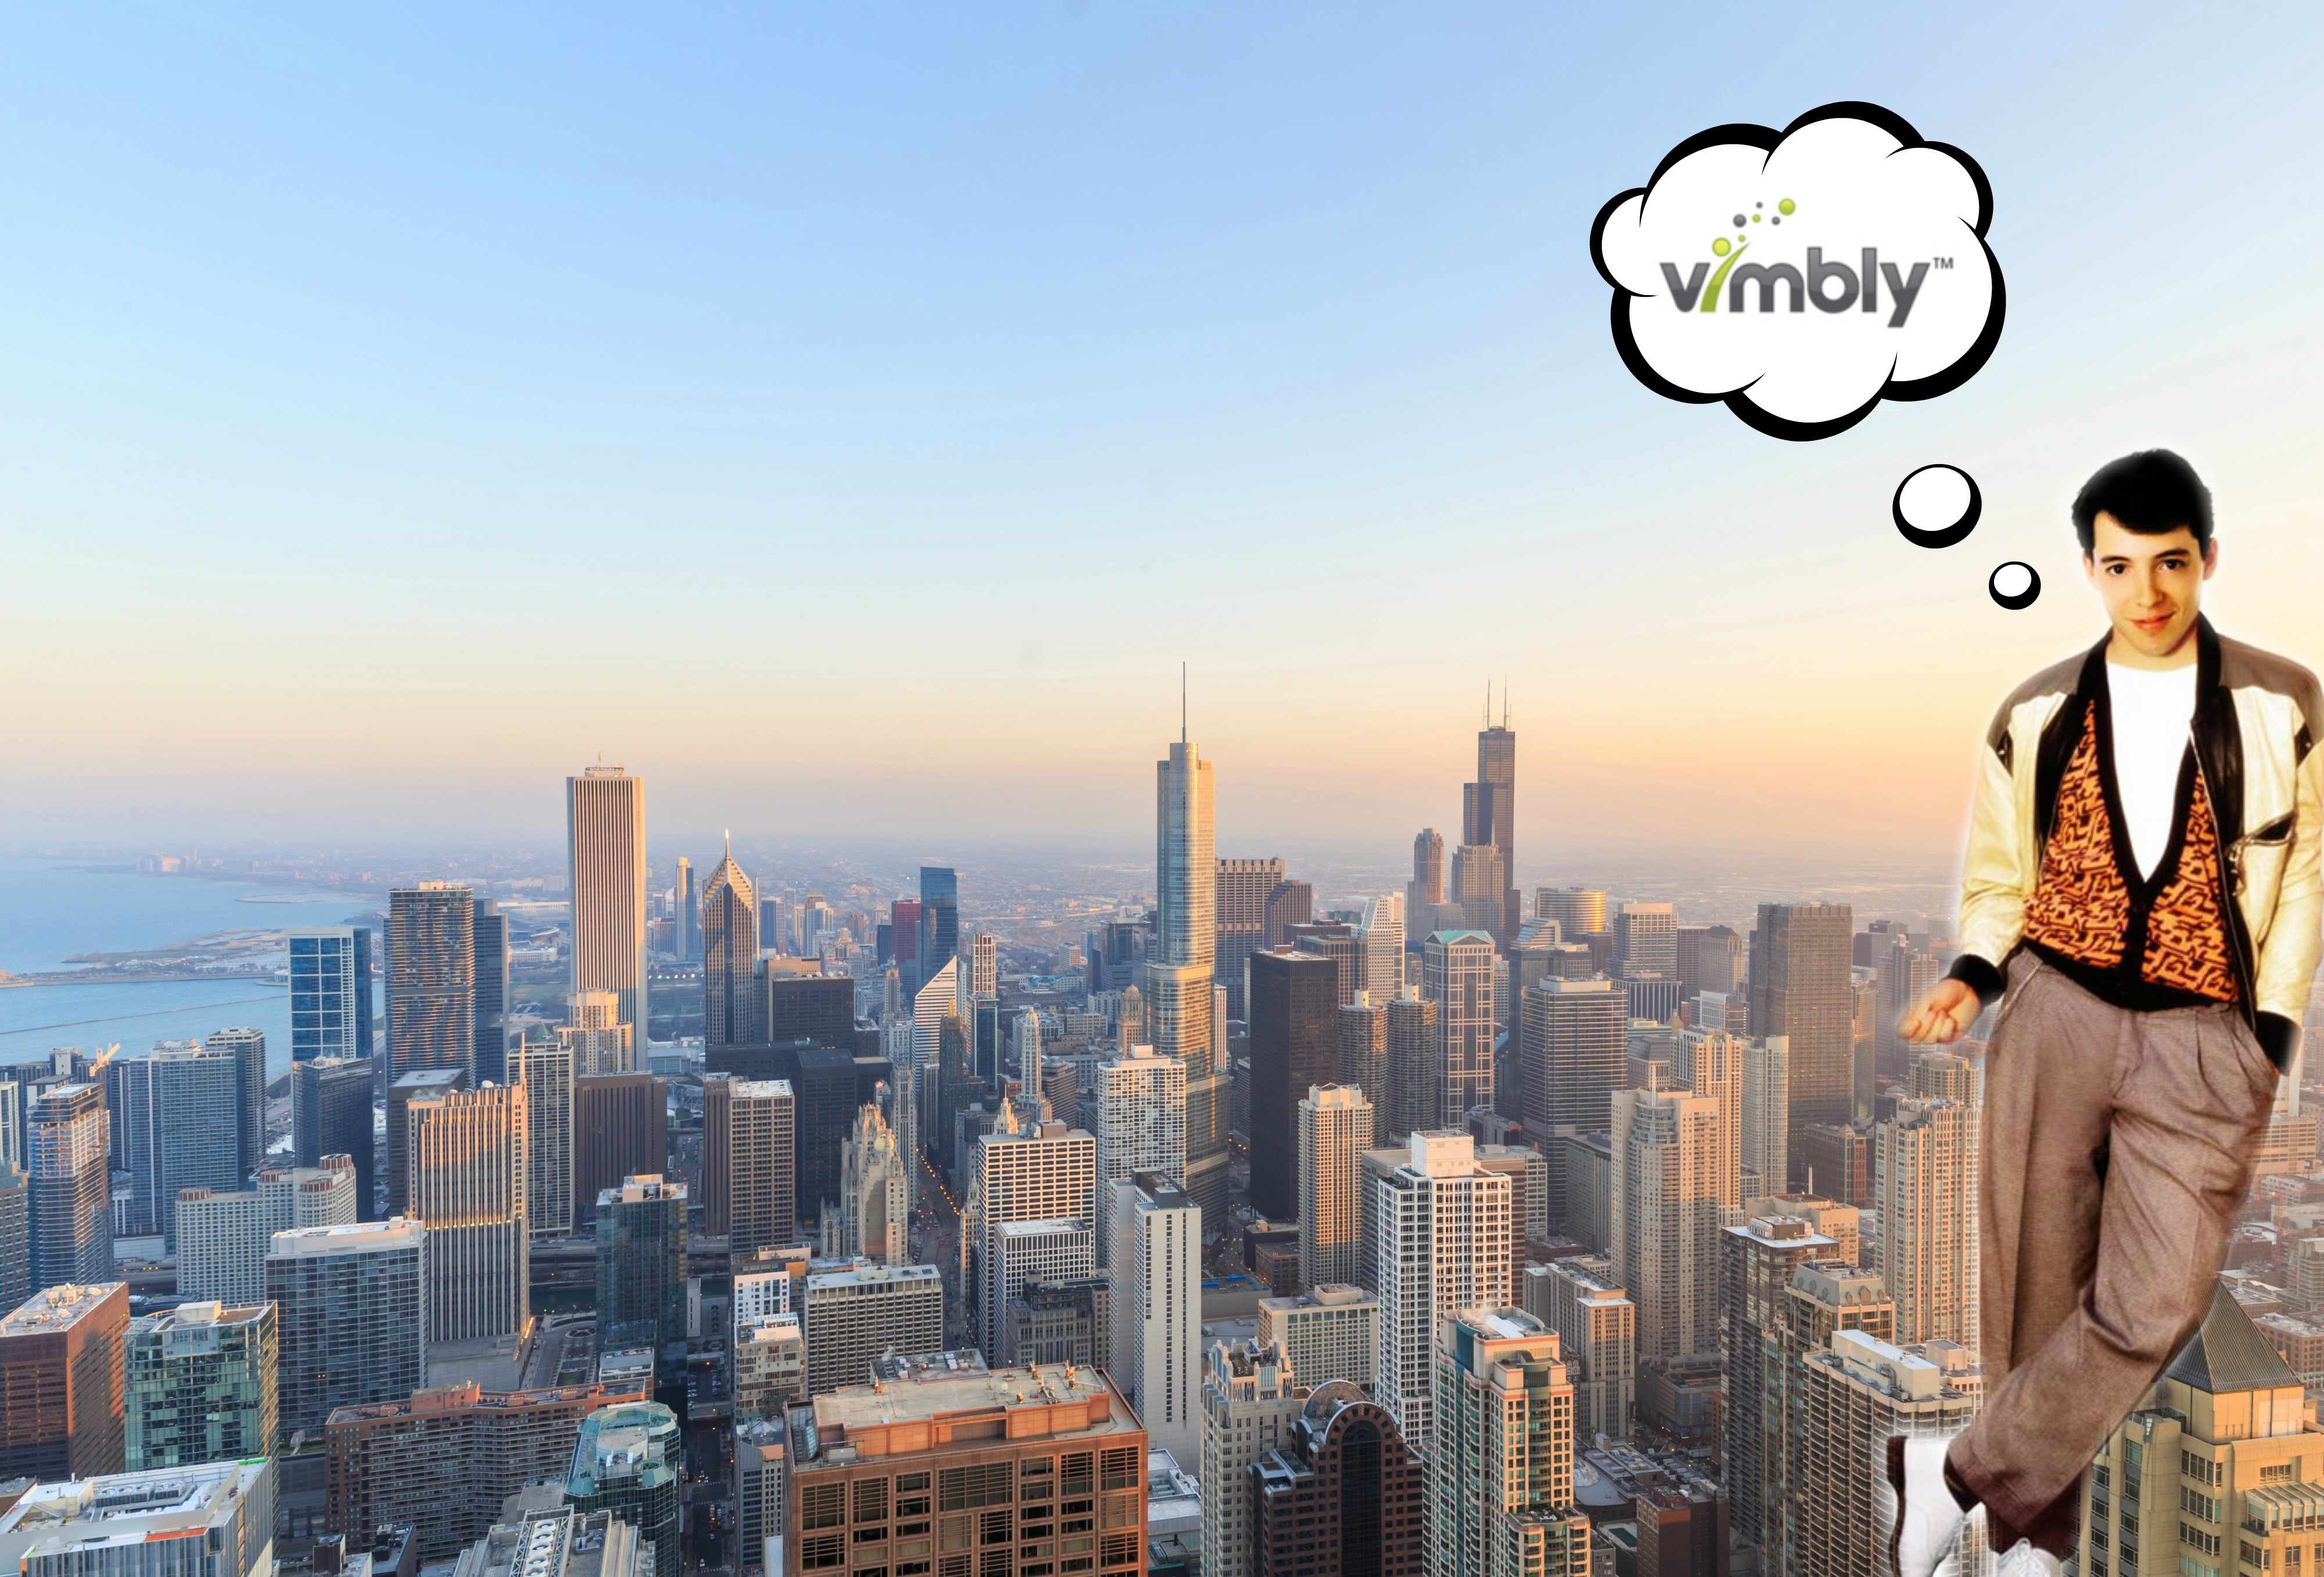 chicago-weird-tours-city-ferris-bueller-vimbly